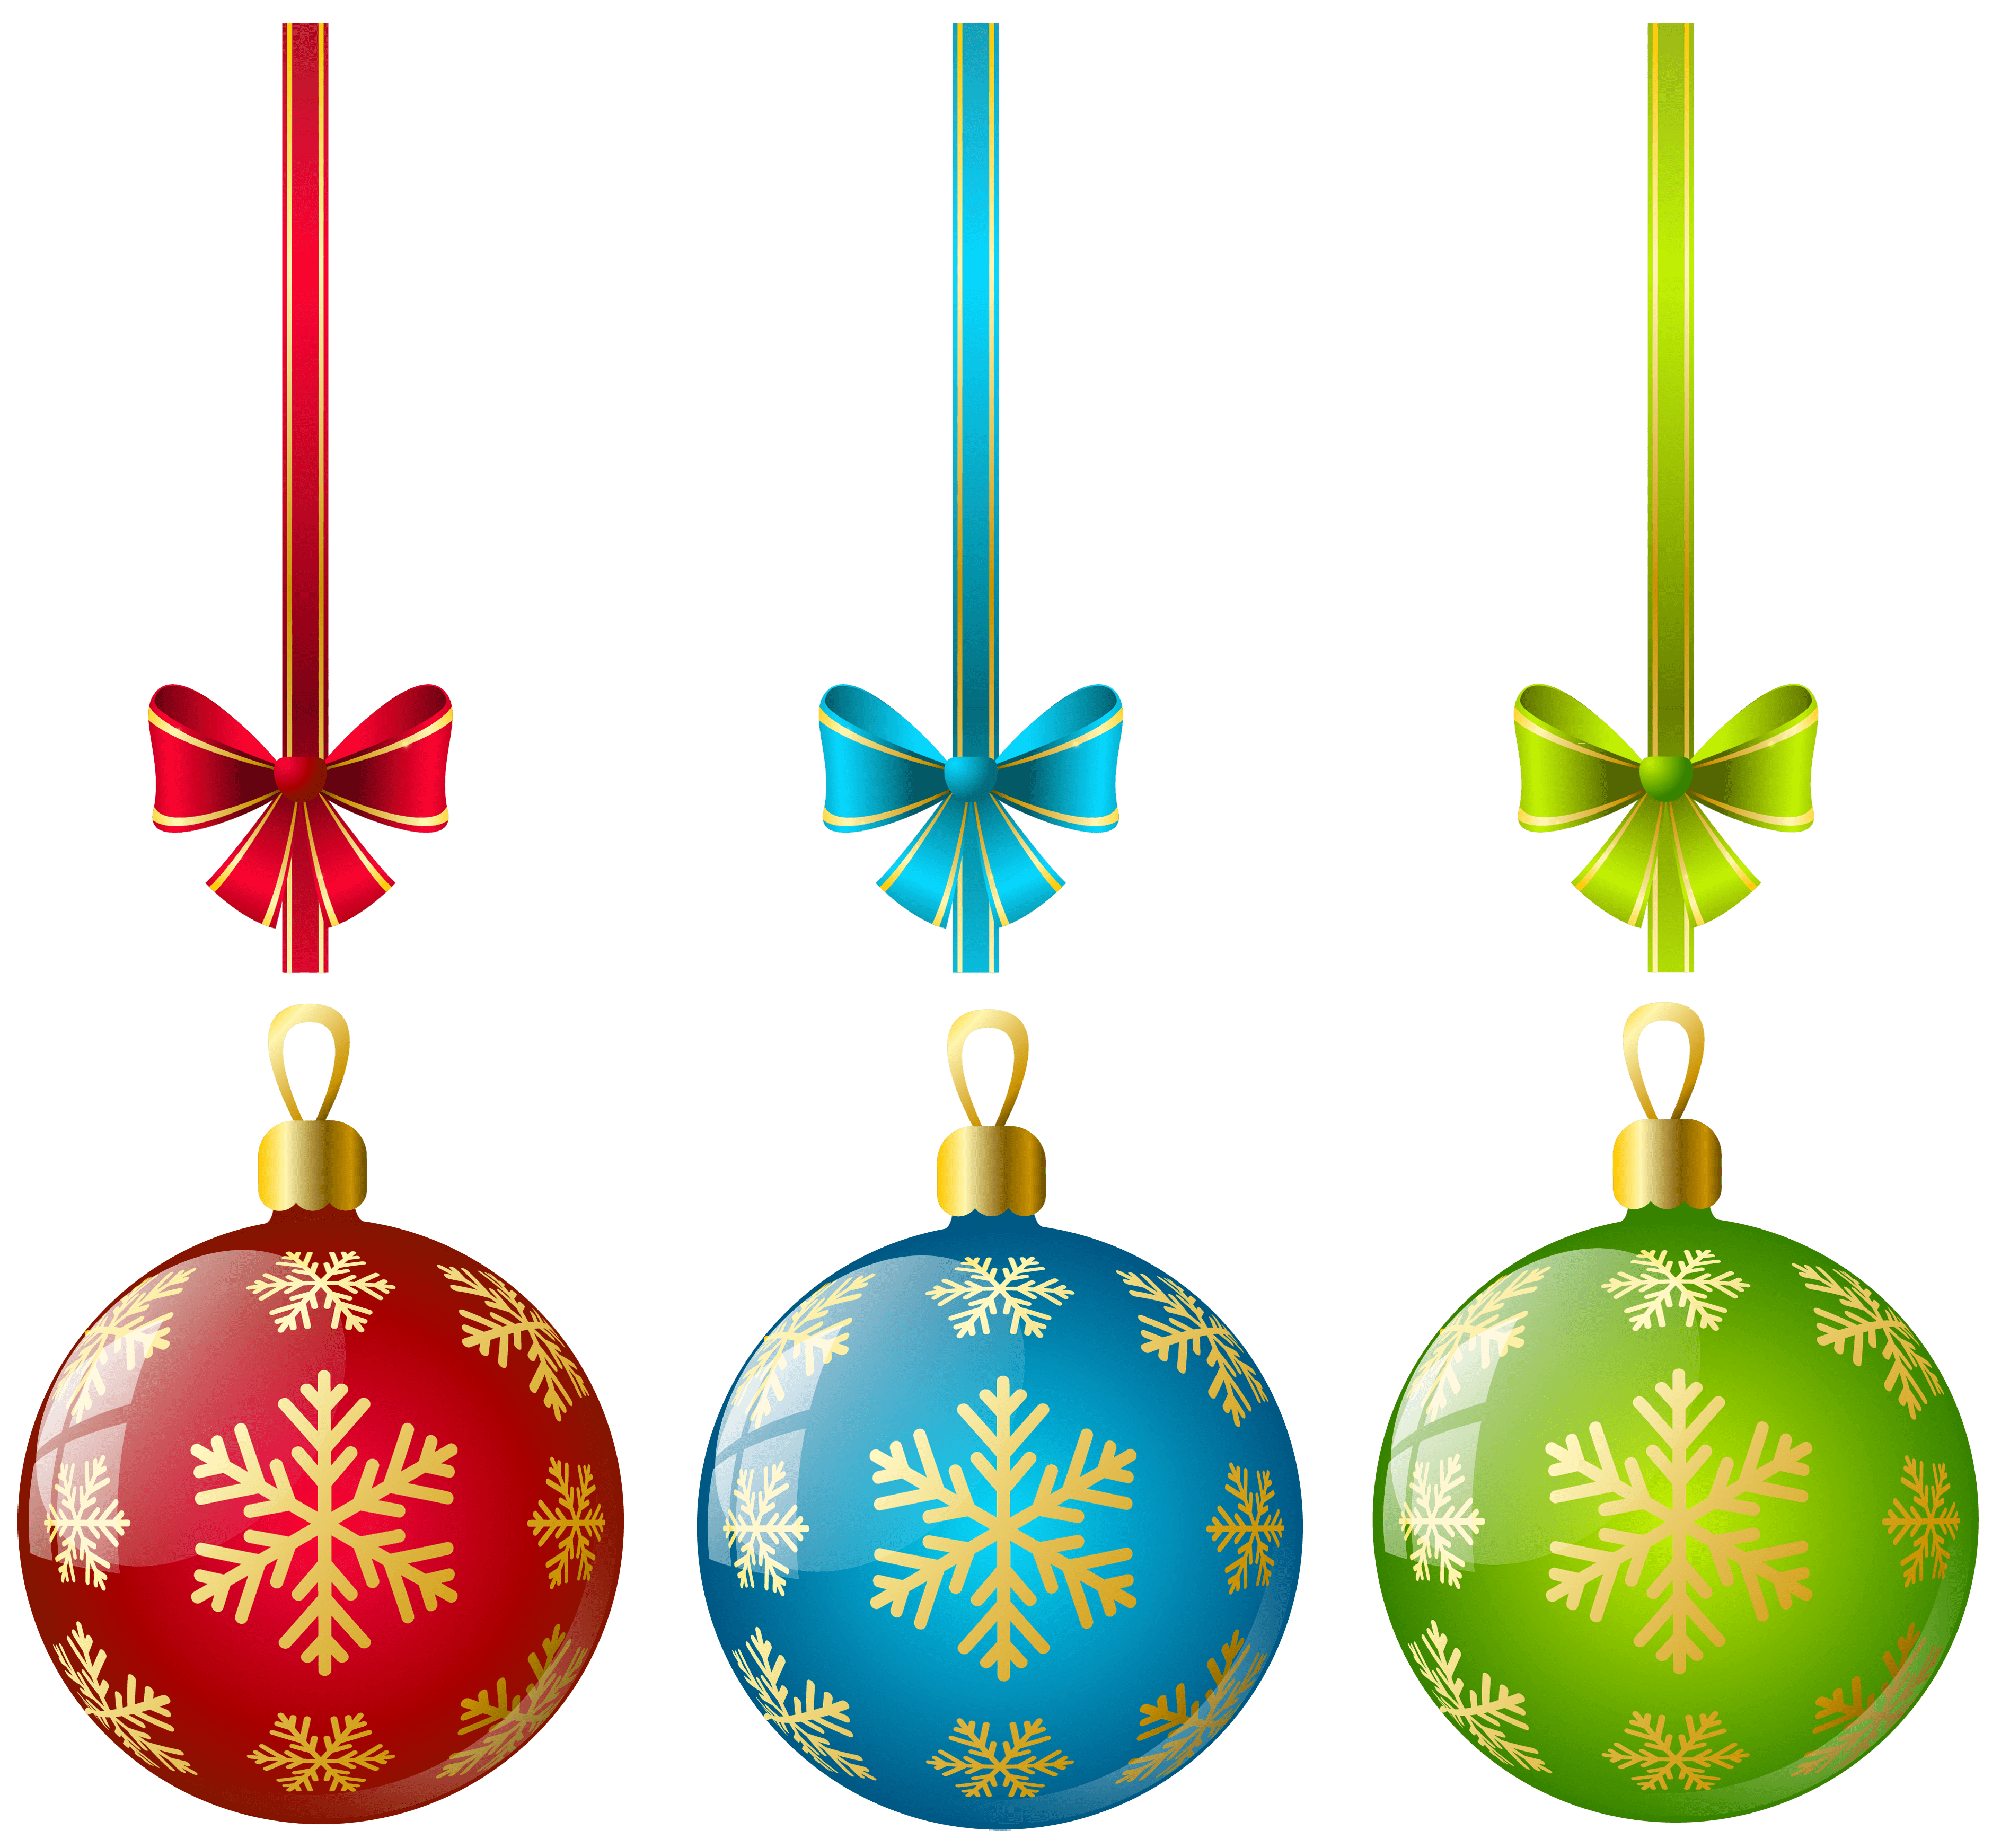 Christmas decoration clipart vector Christmas Ornaments Clip Art Free Images – Merry Christmas And Happy ... vector